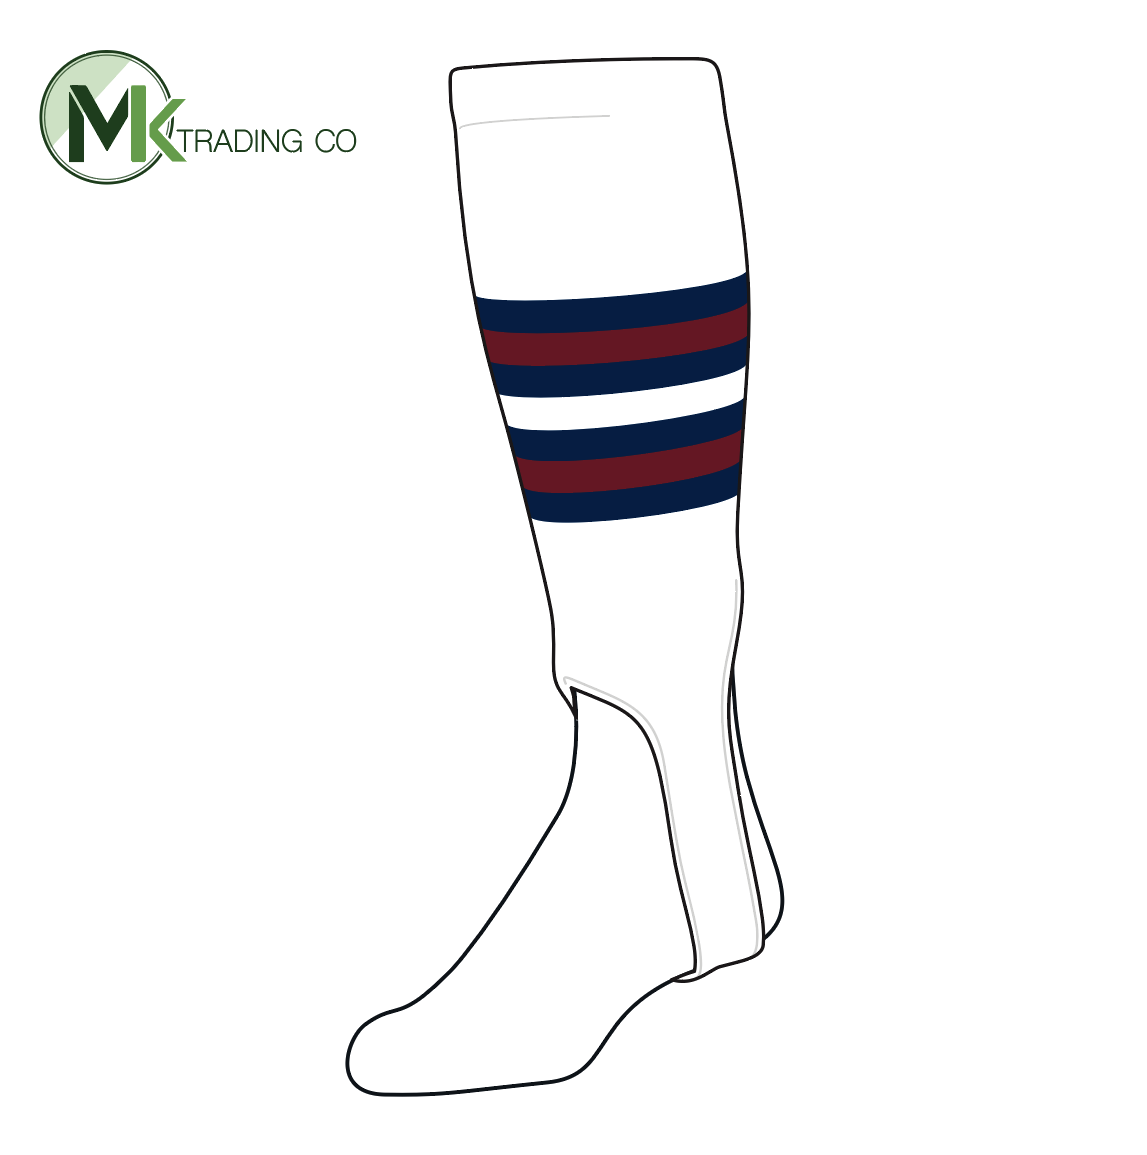 TCK Baseball Stirrups Medium (200I, 5in) White, Navy, Cardinal